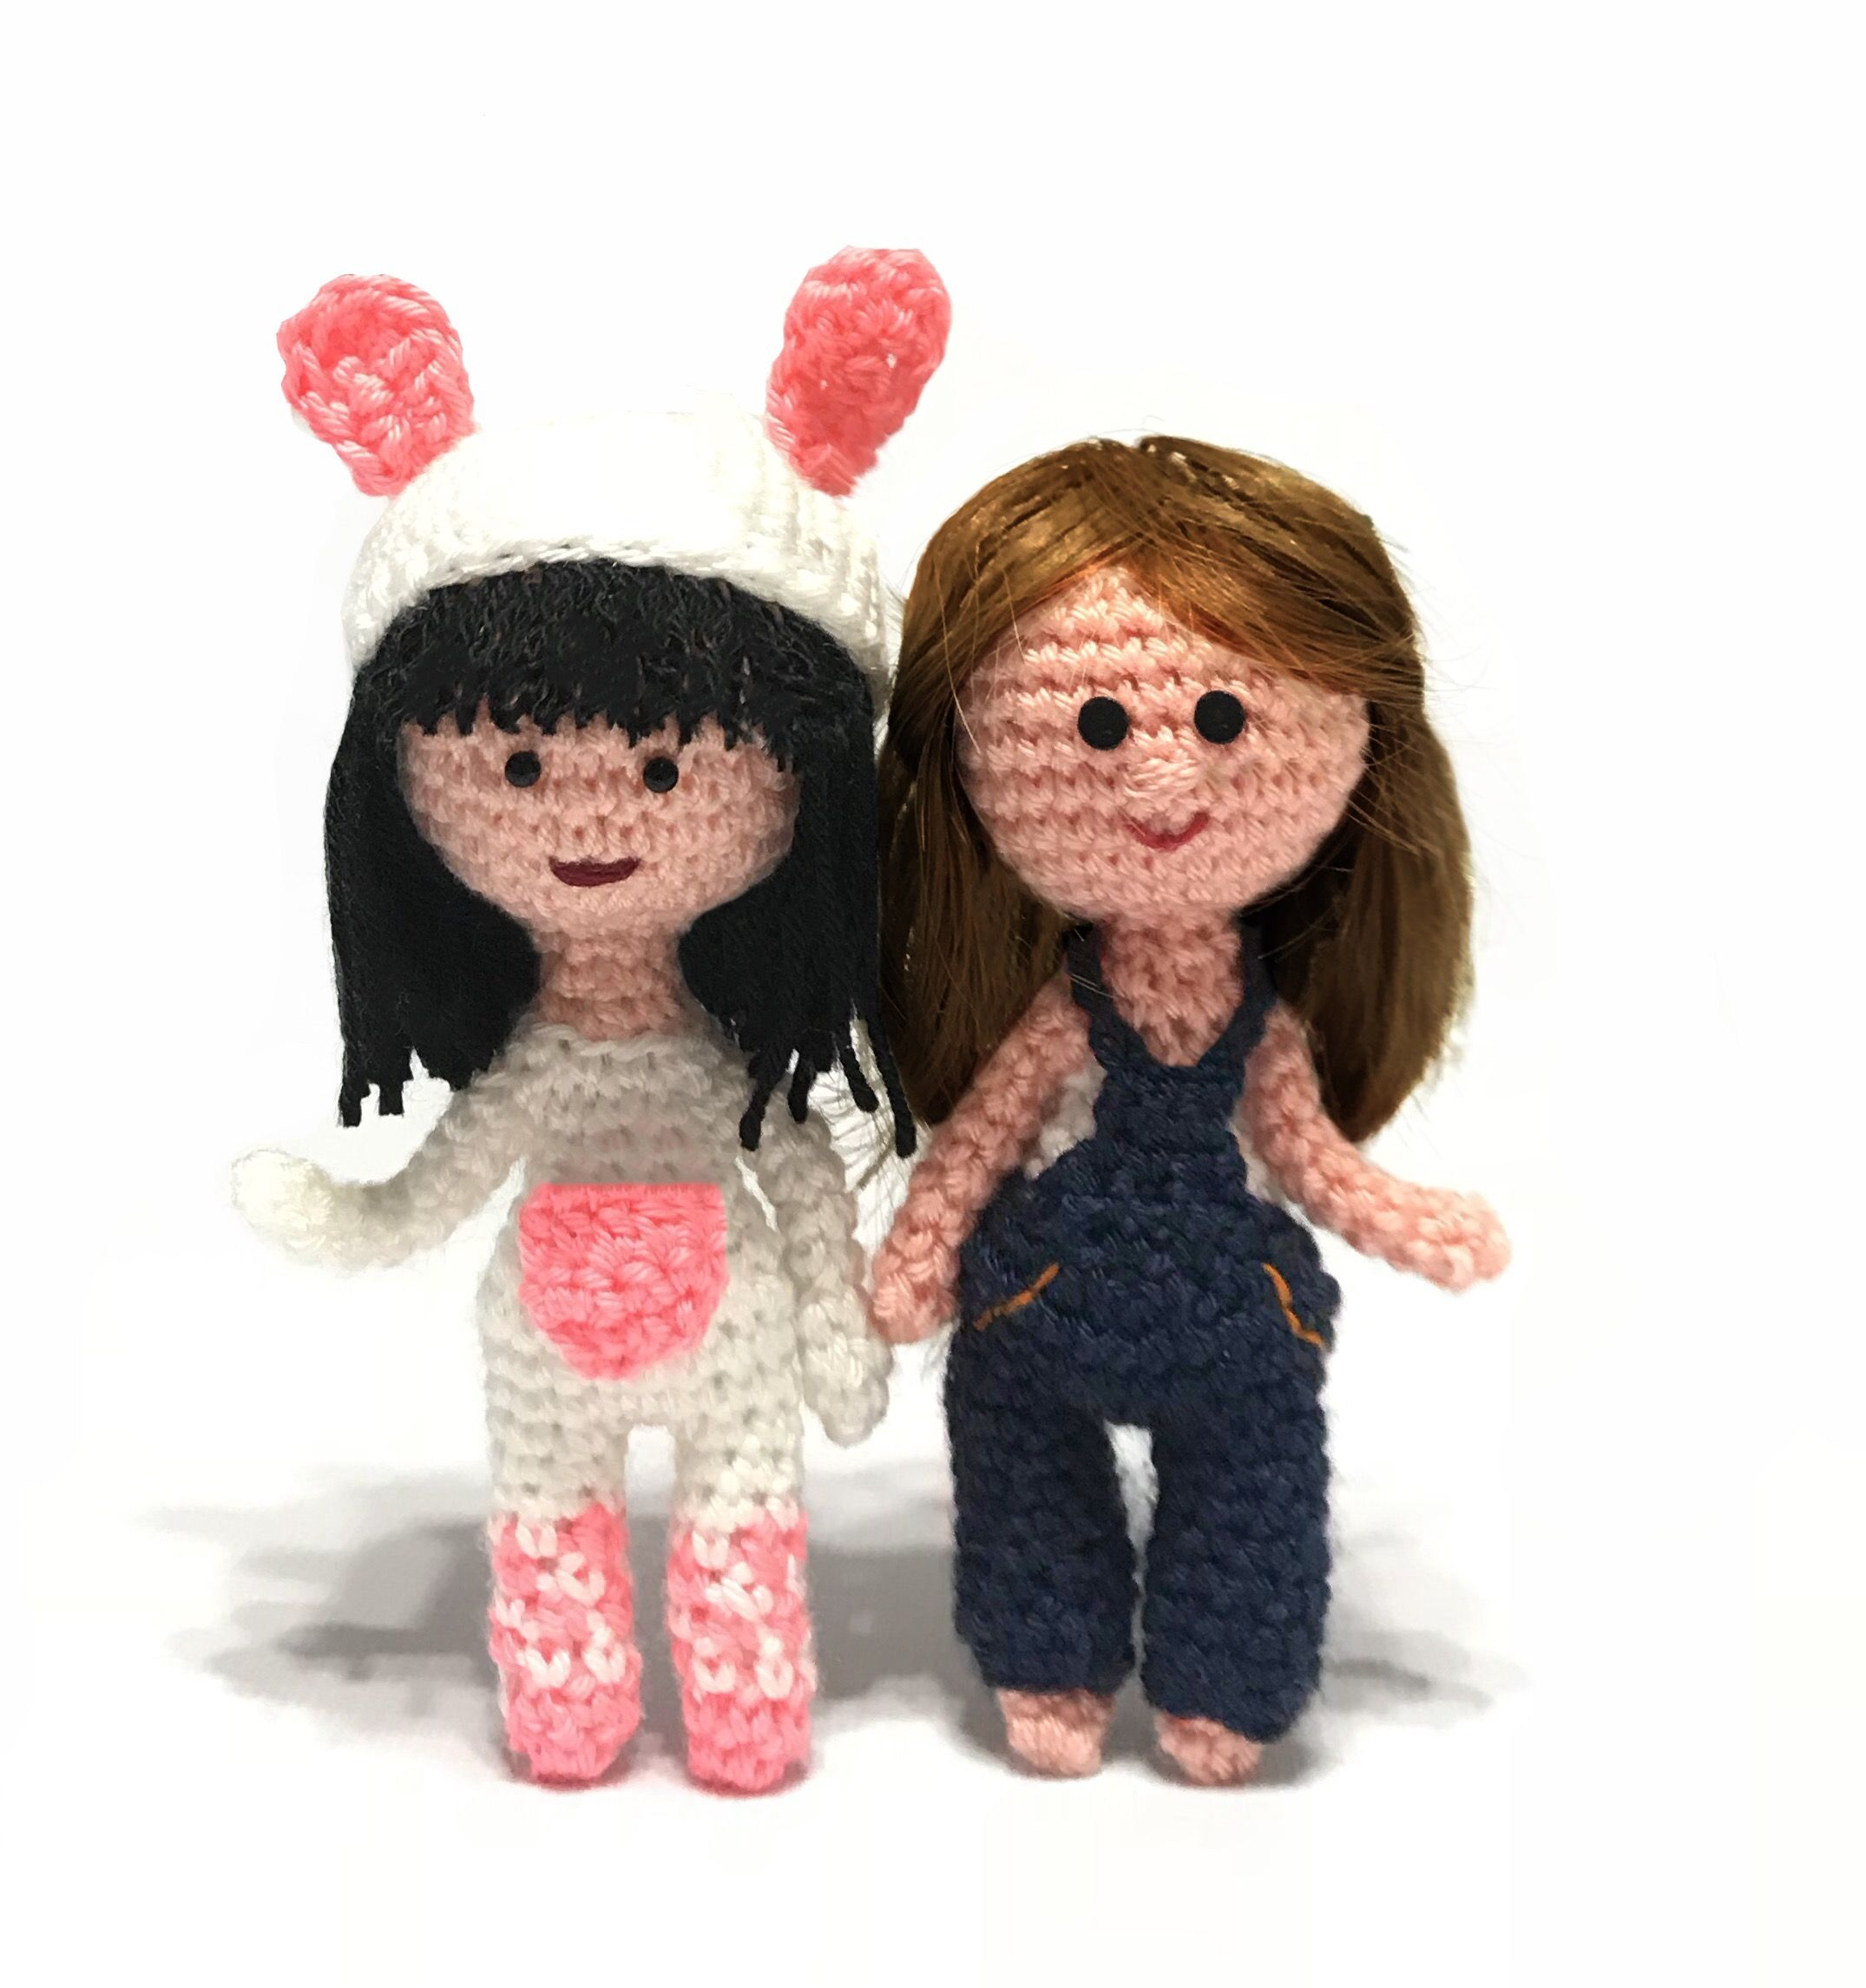 Amigurumi Crochet doll pattern: Milena in Pink clothes | 2291x2150